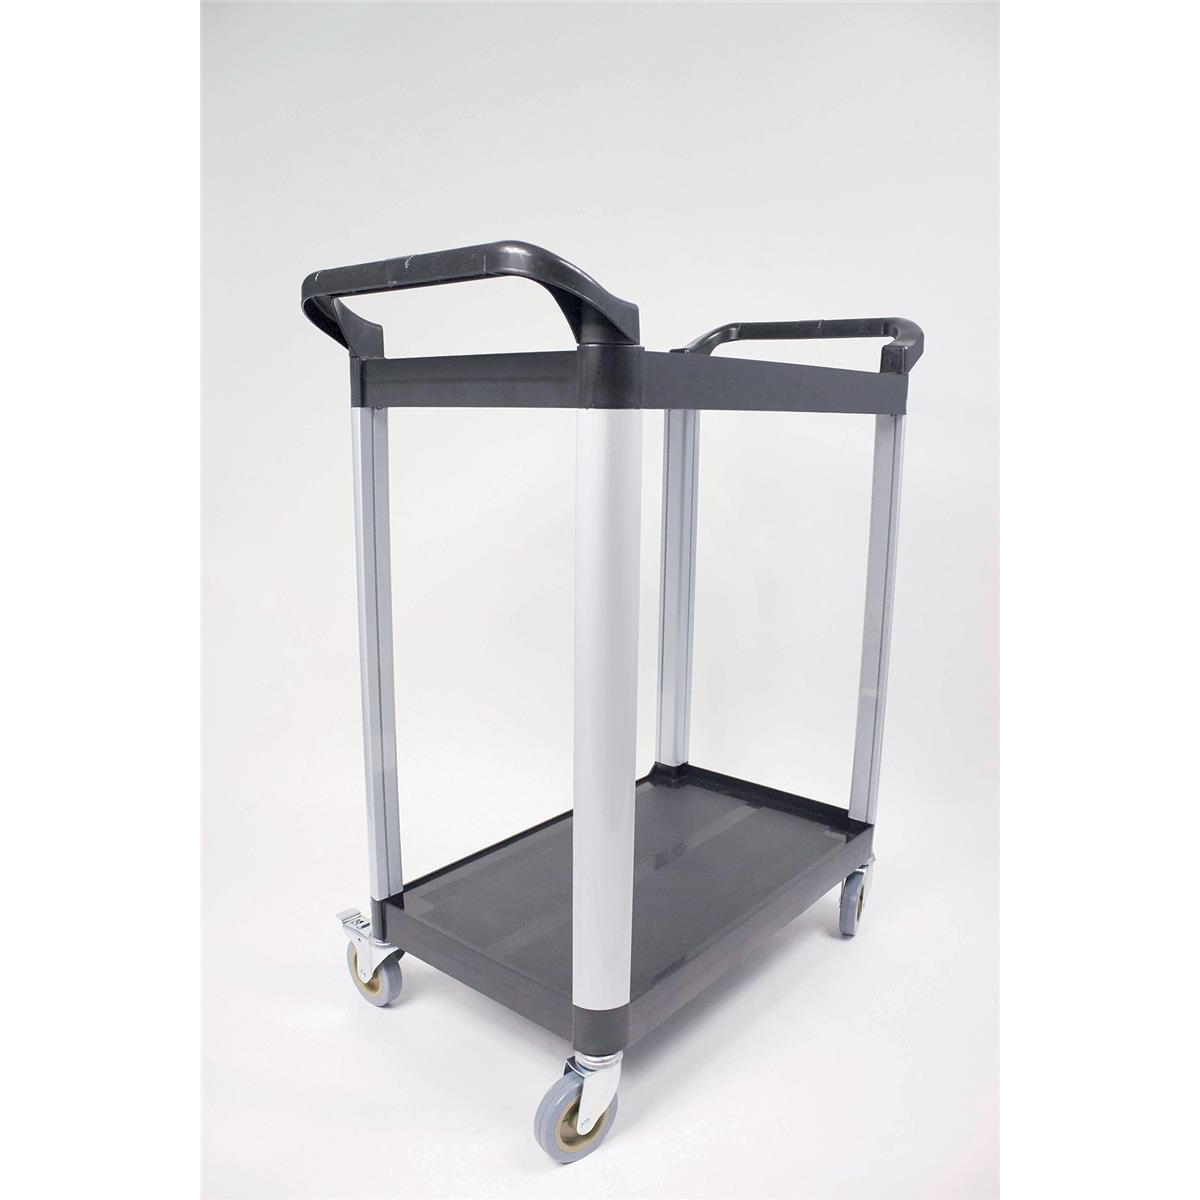 Trolleys or accessories 5 Star Facilities Utility Tray Trolley Standard 2 Shelf Capacity 100kg W460xD750xH940mm